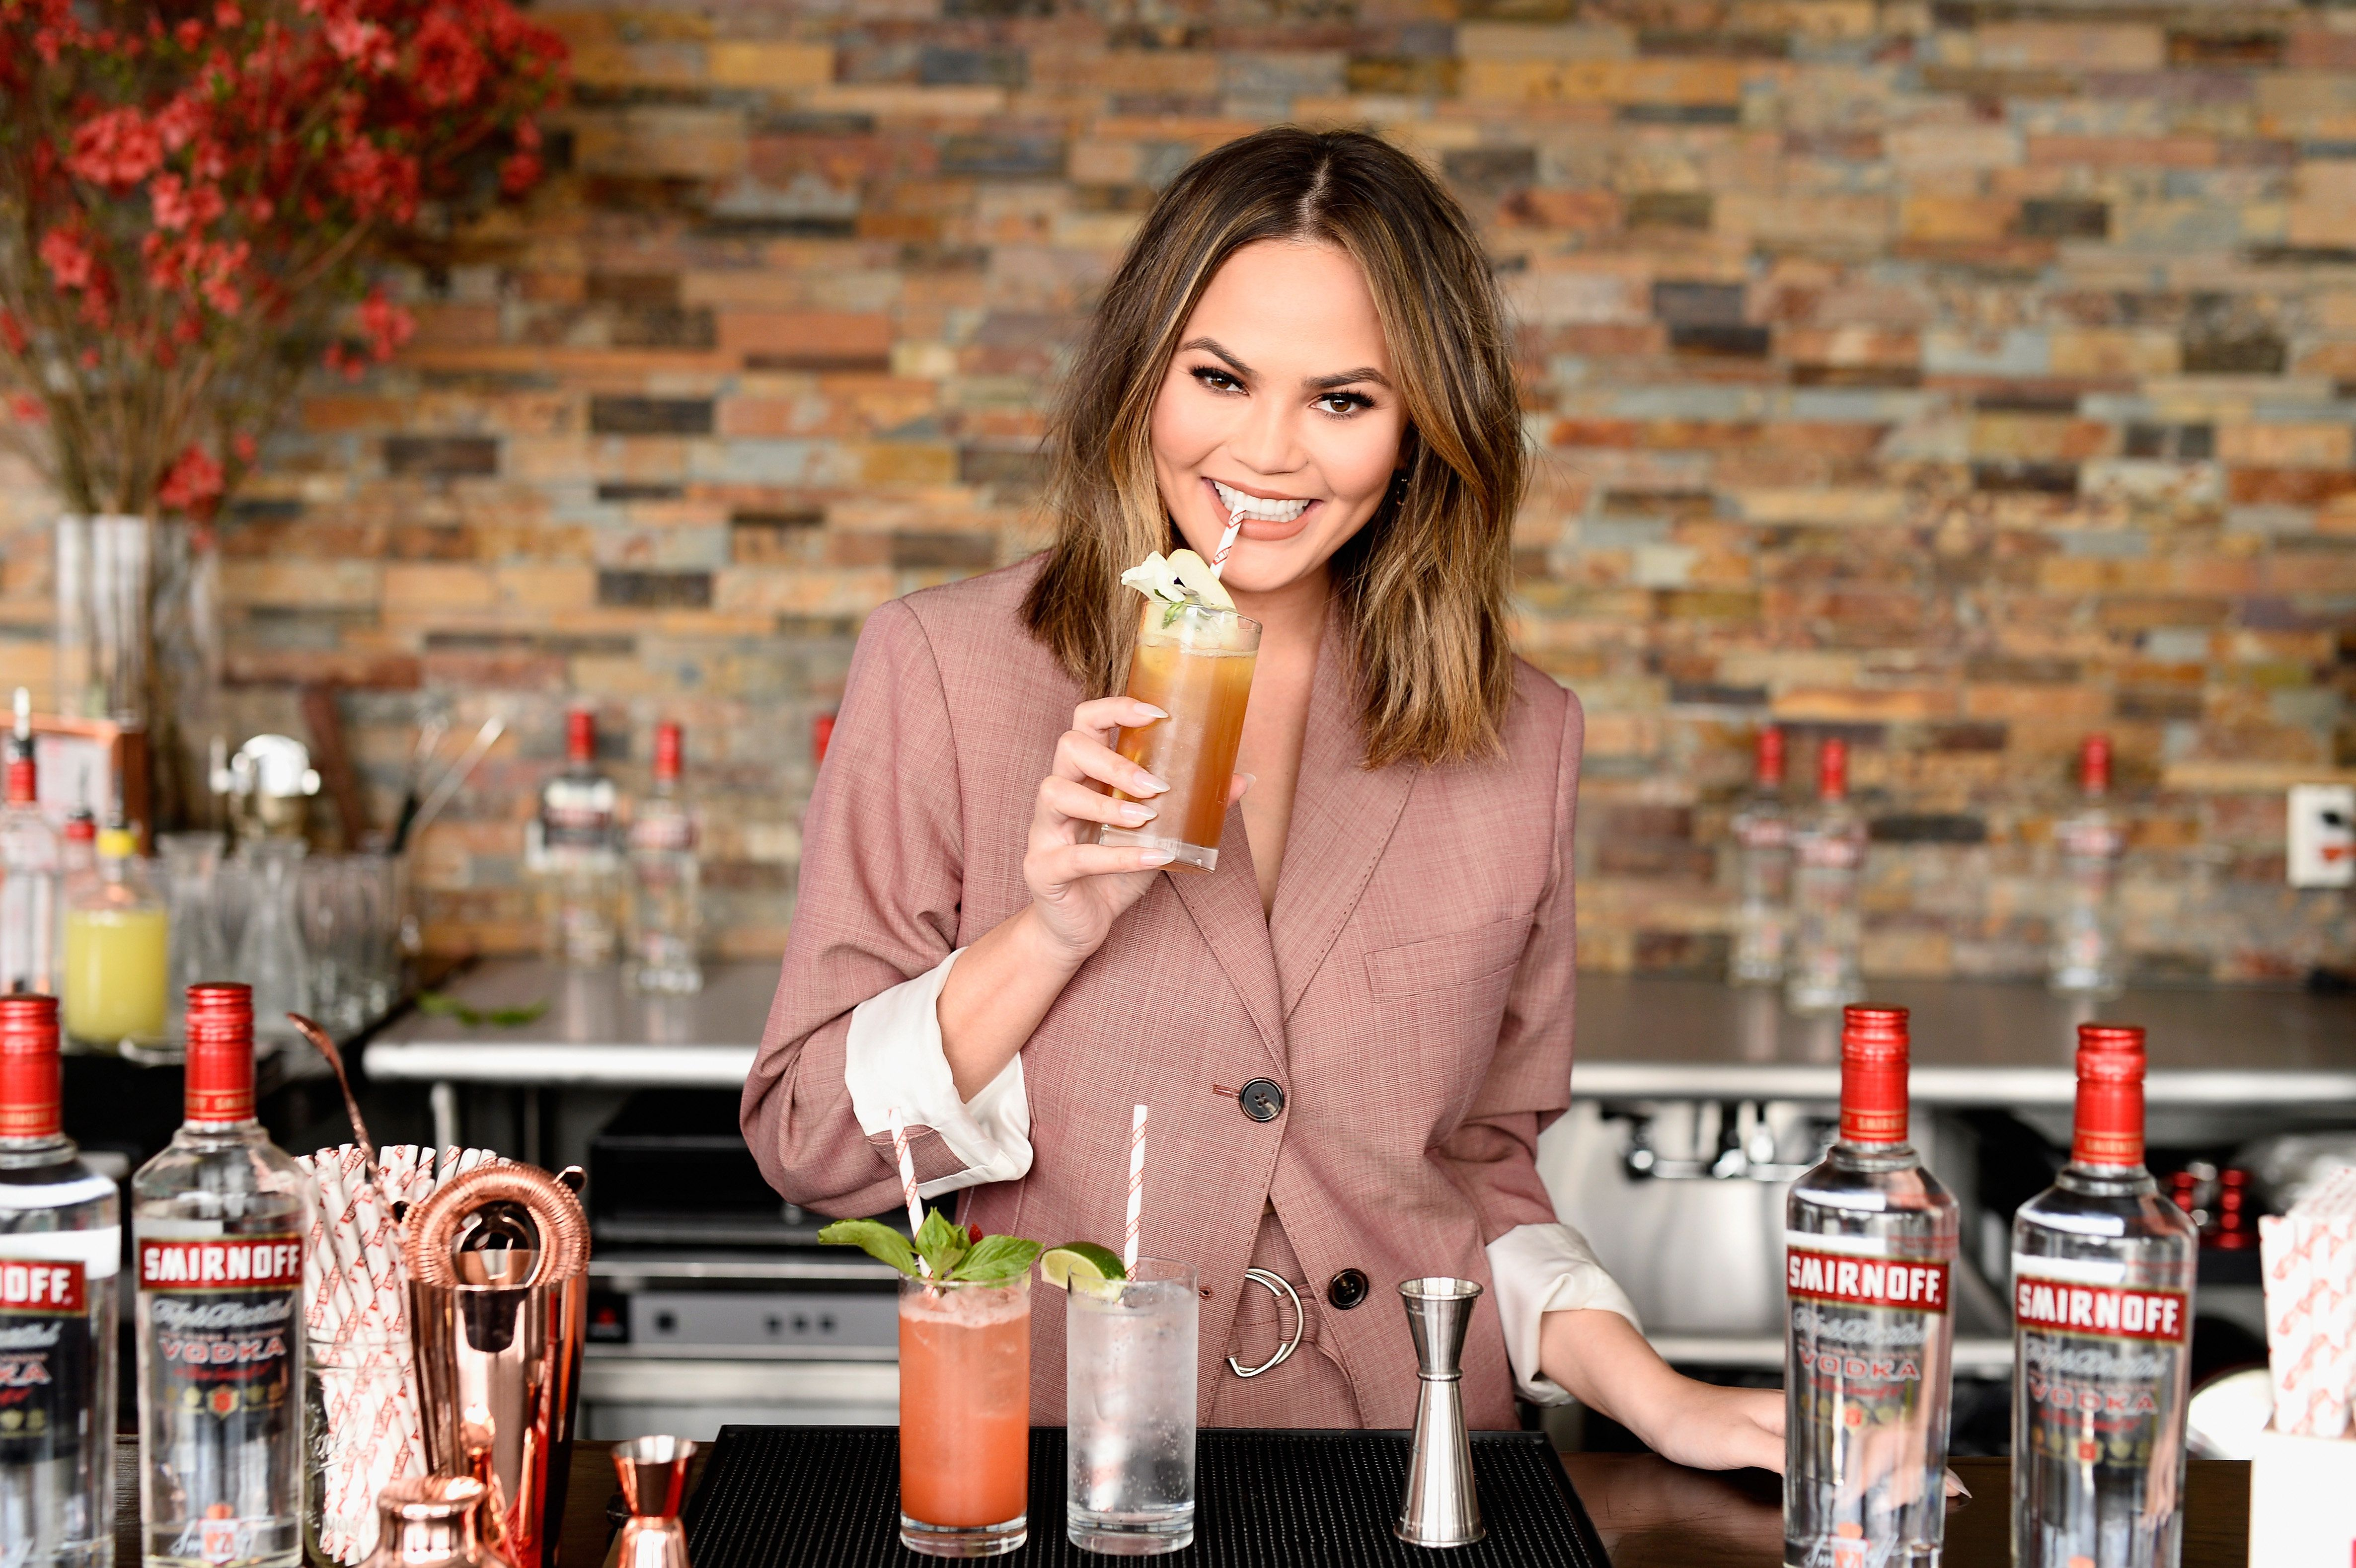 Chrissy Teigen Opens Up About Her Past Struggles With Alcohol